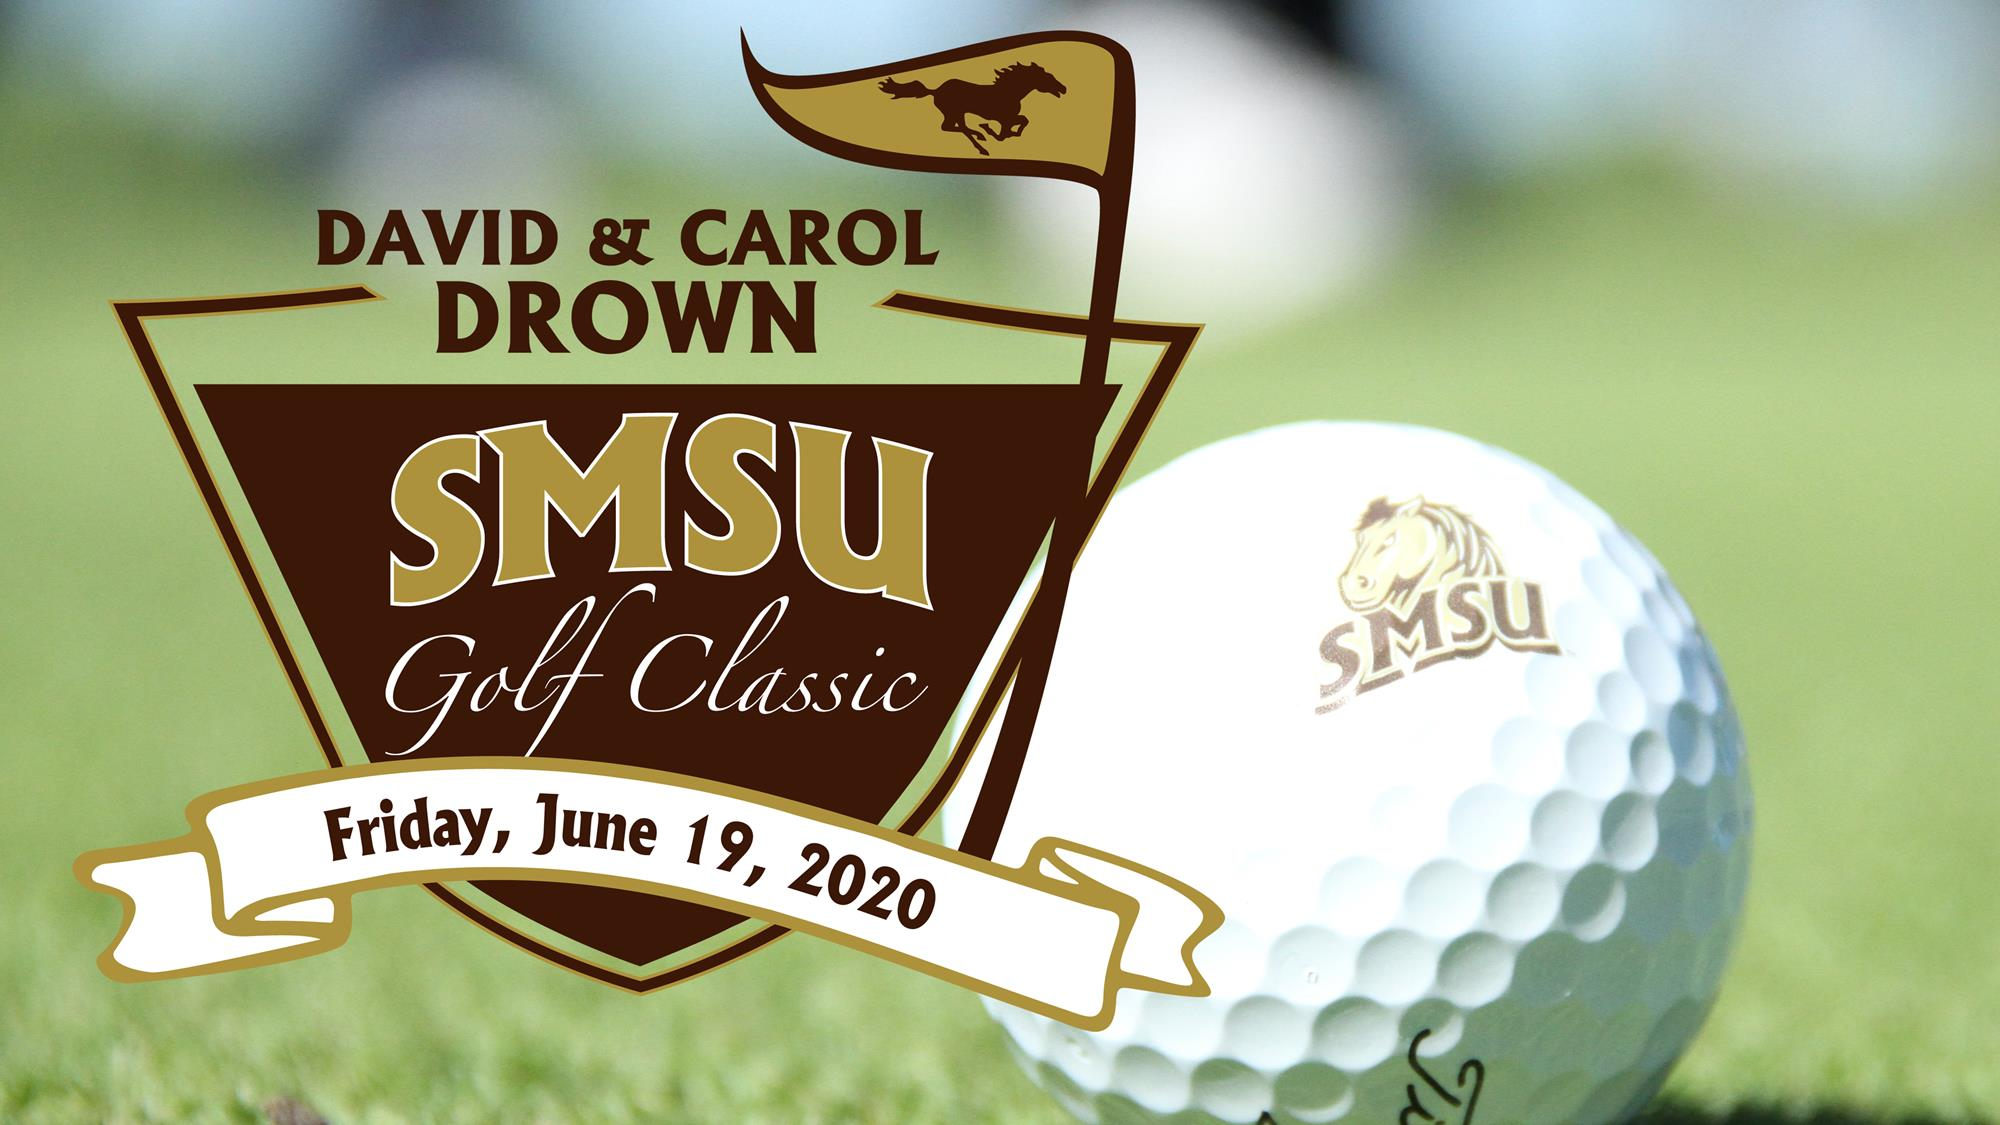 Annual Drown SMSU Golf Classic Still Scheduled for June 19